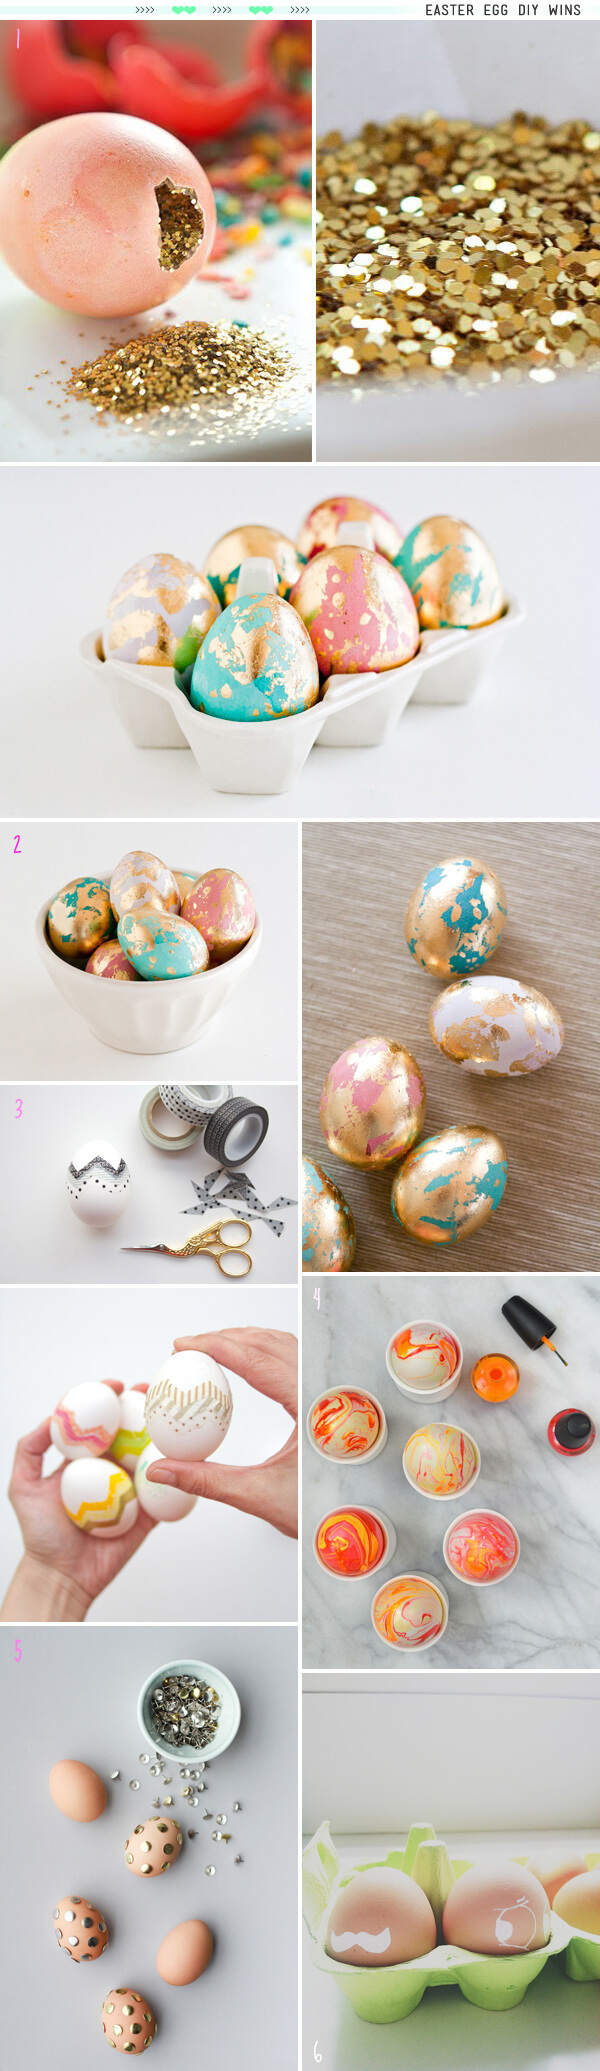 easter-egg-diy-craft-project-best-of-the-blogs